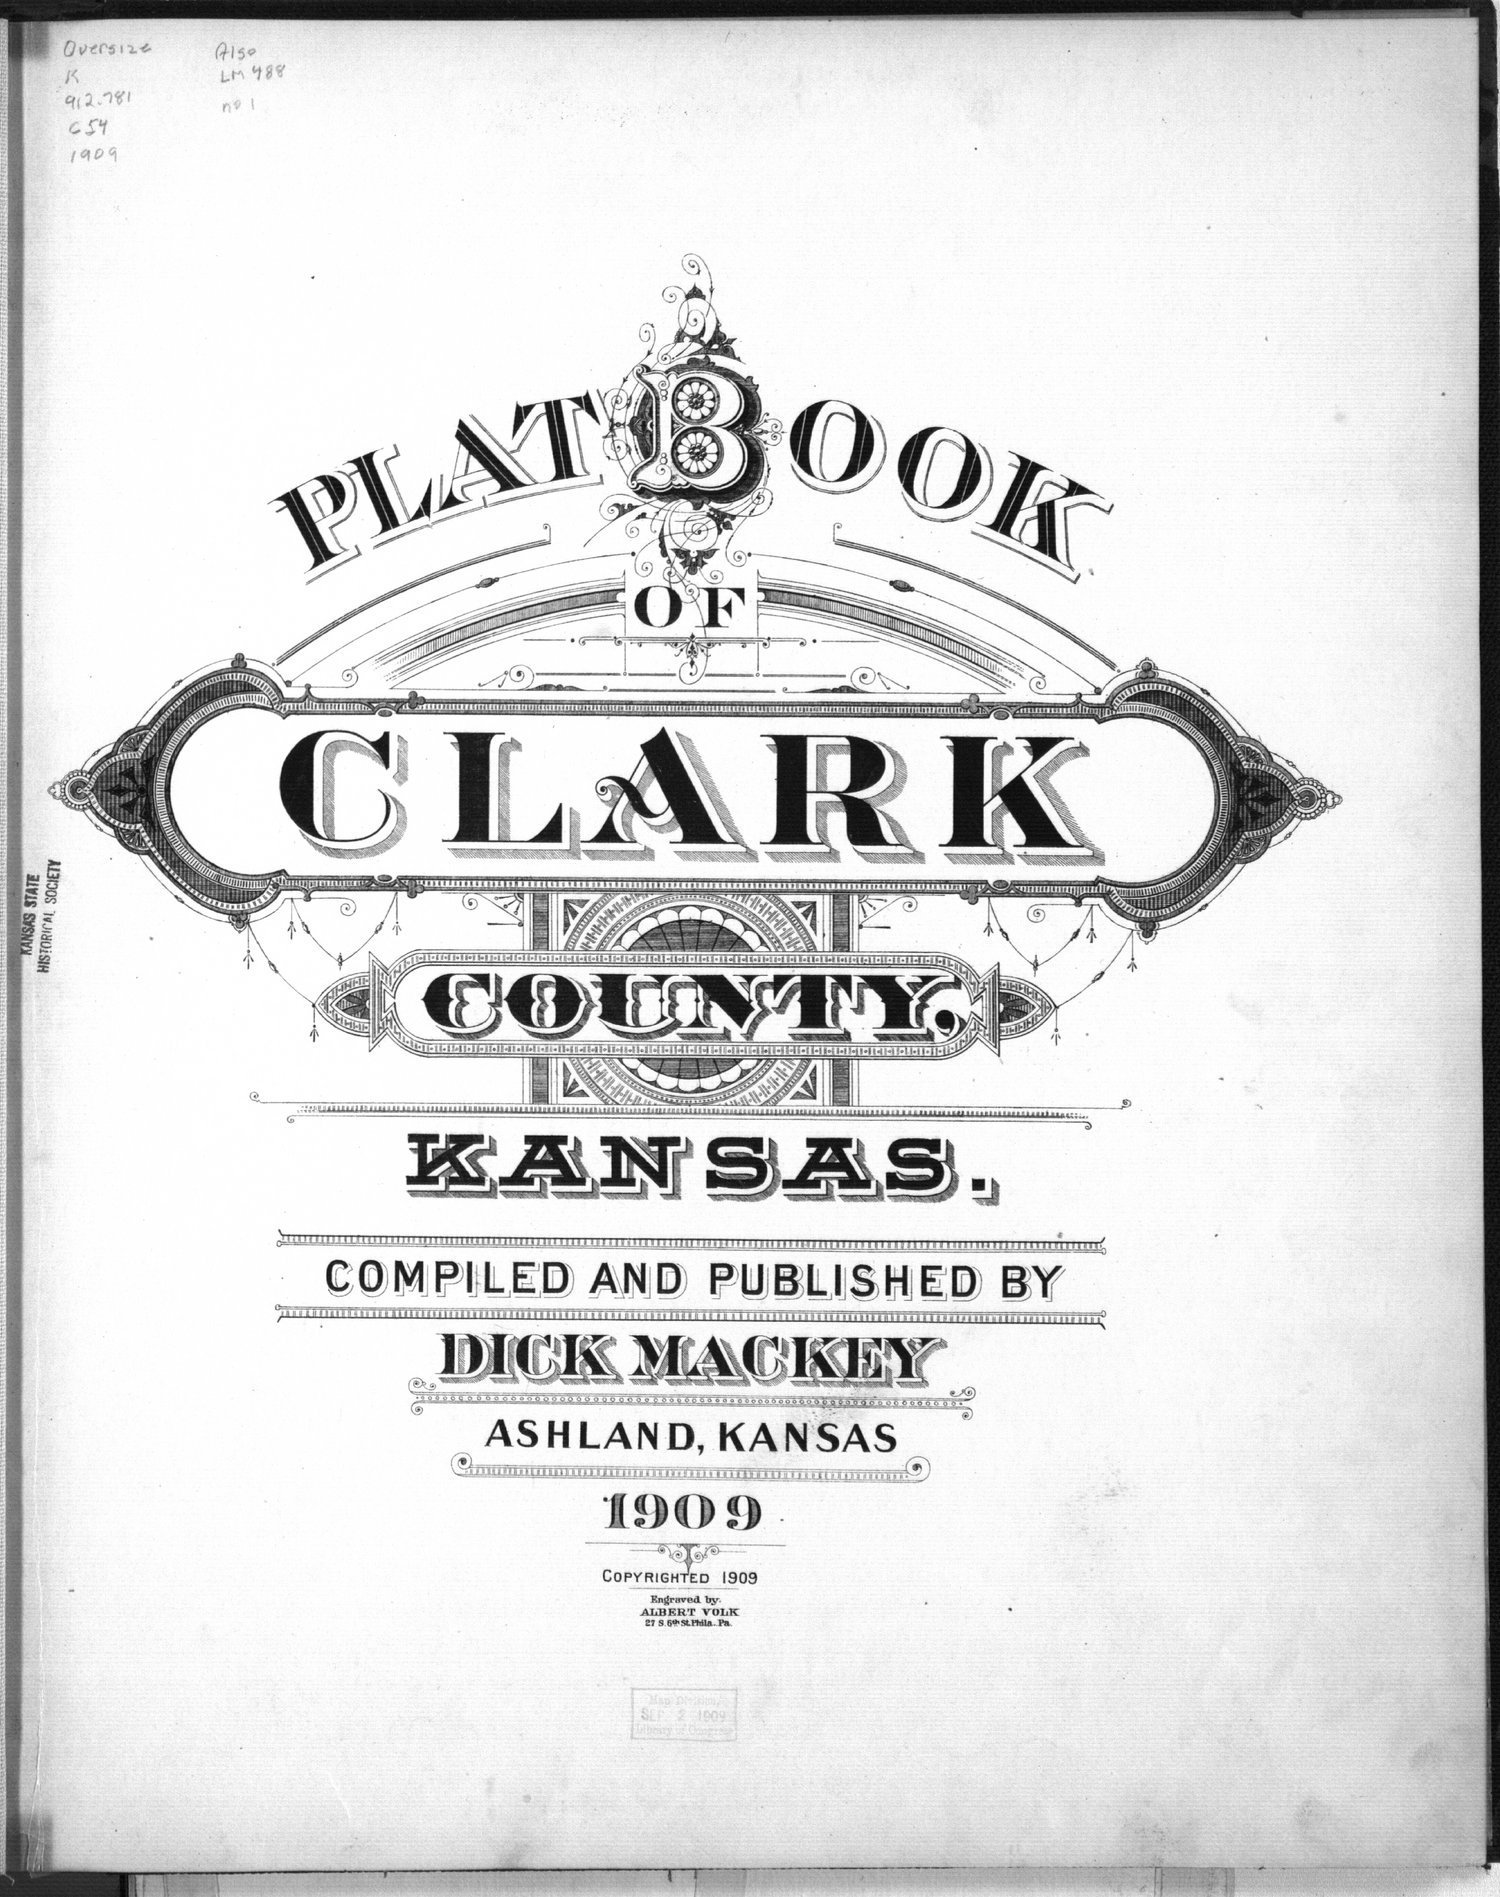 Plat book of Clark County, Kansas - Title page